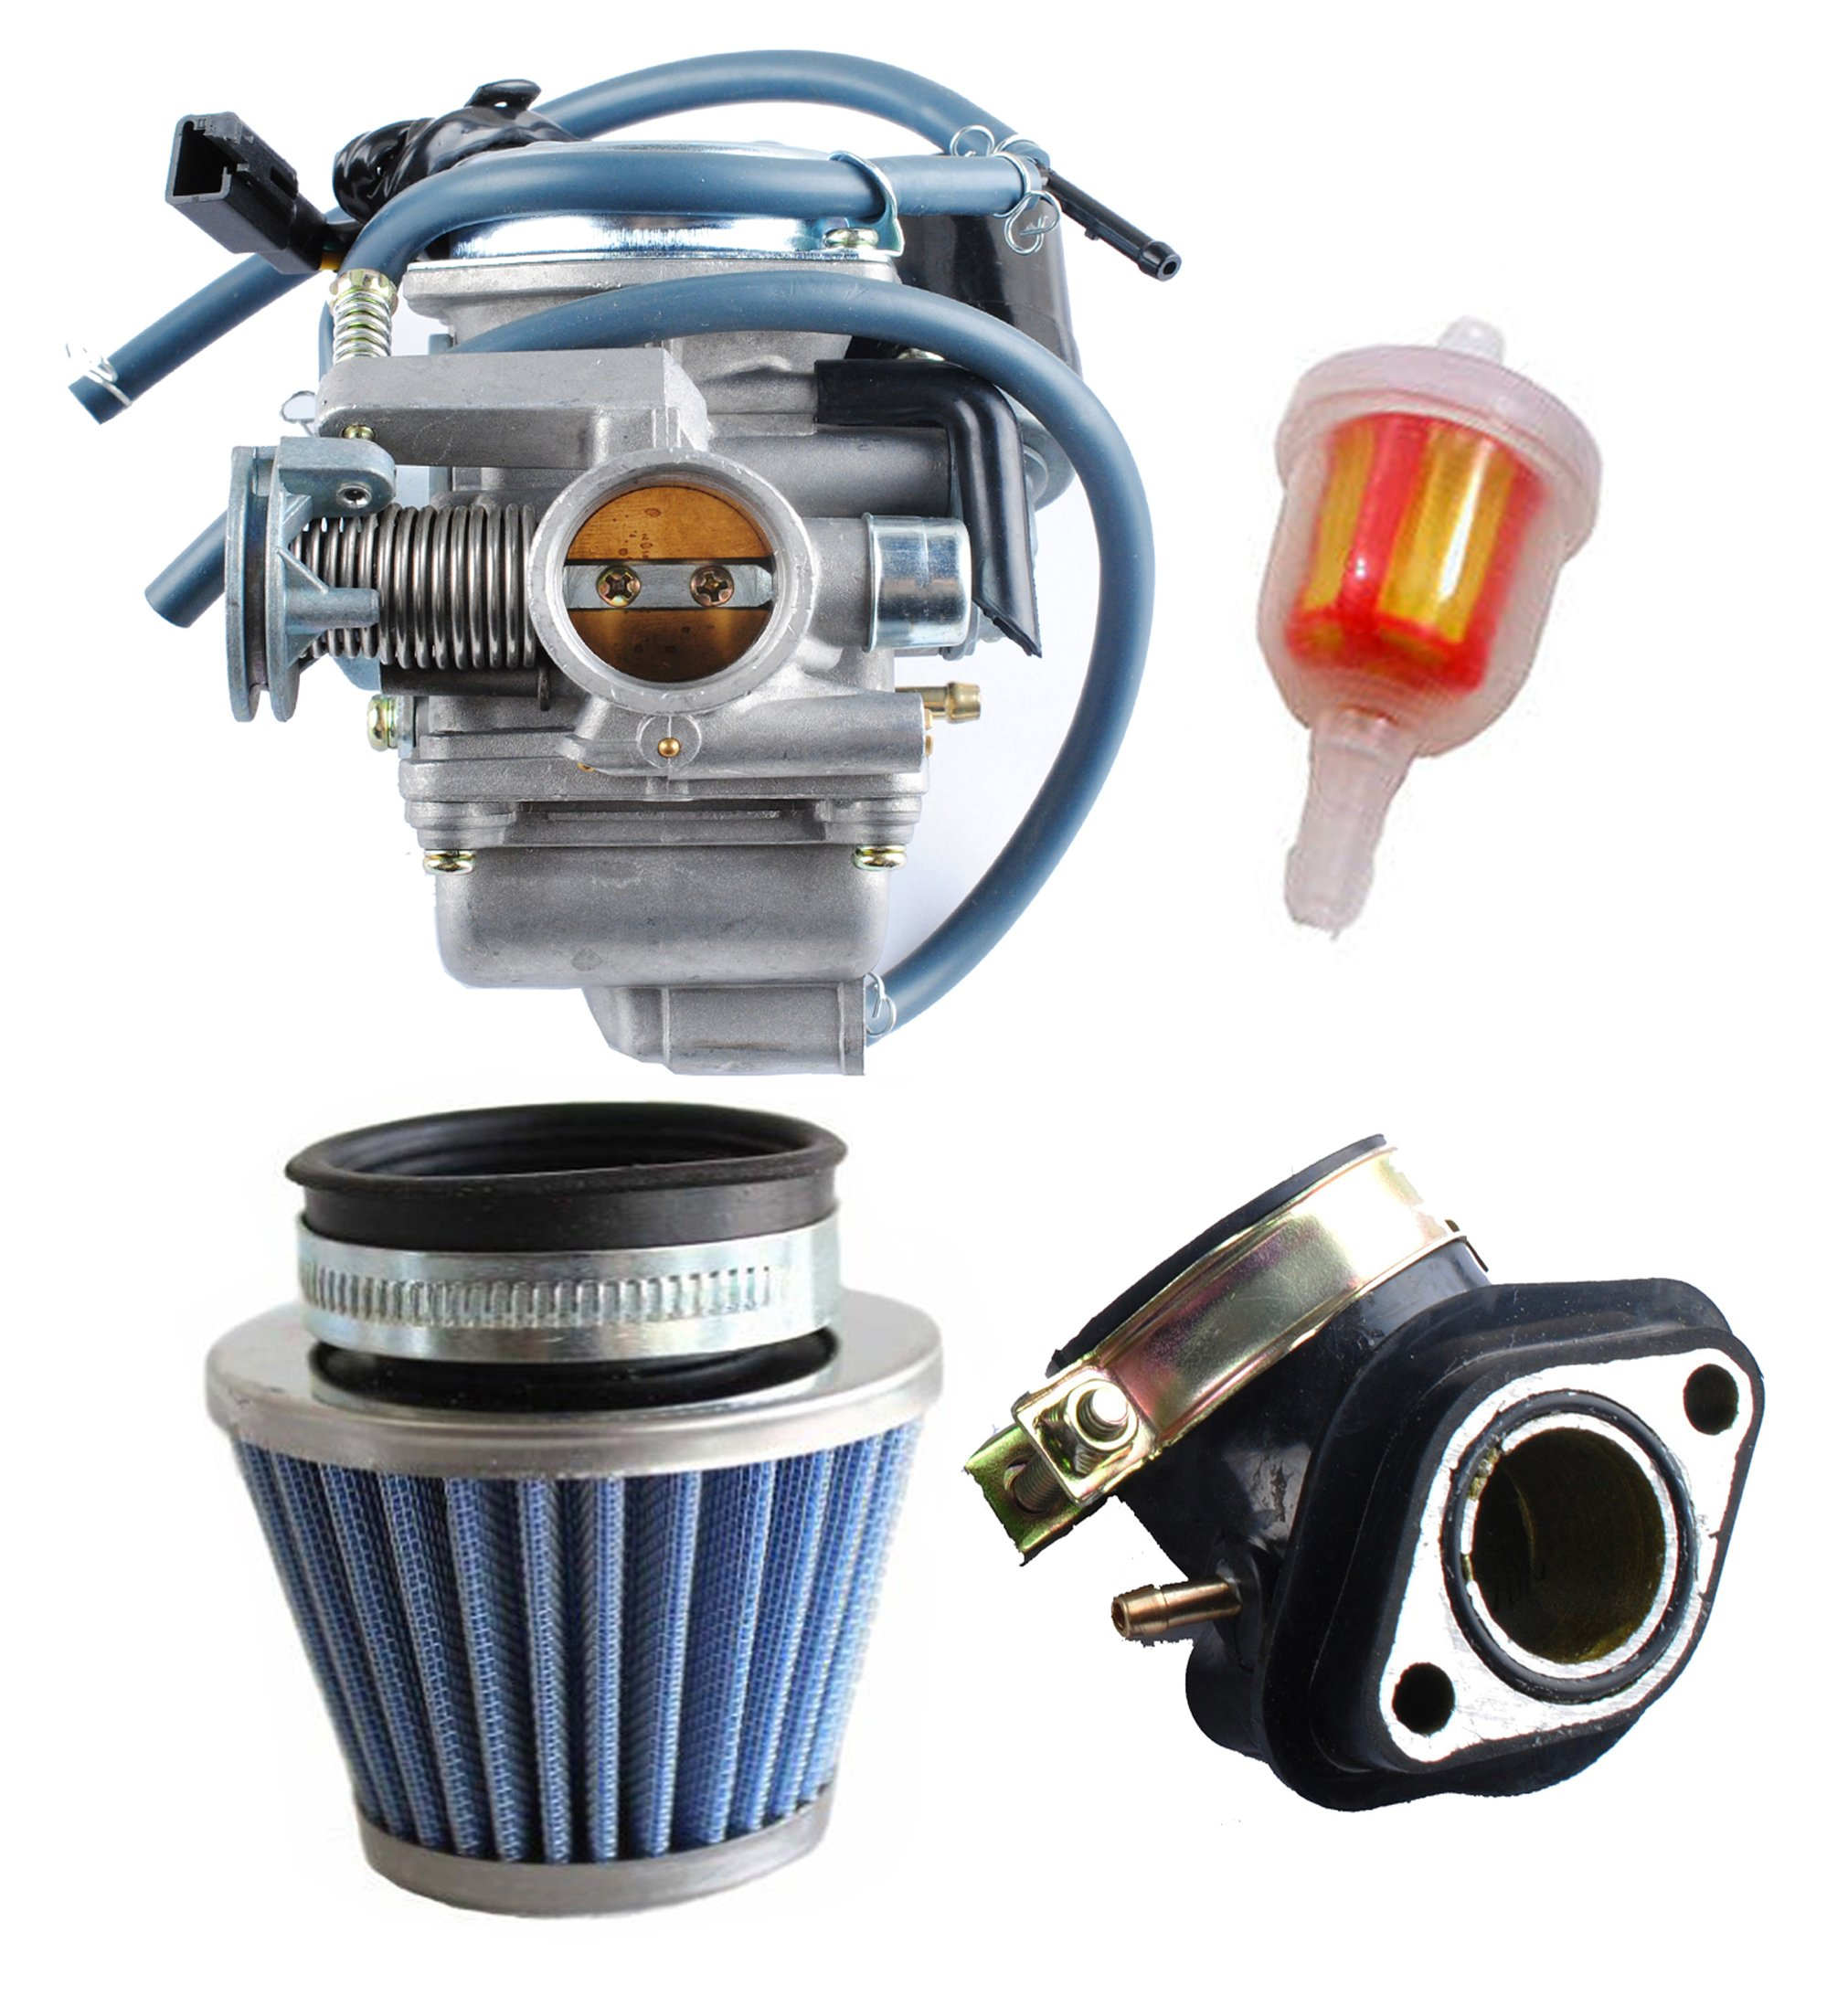 Podoy 150cc Carburetor GY6 26mm Carb with Air Filter Intake Manifold Fuel  Filter Kit for Roketa